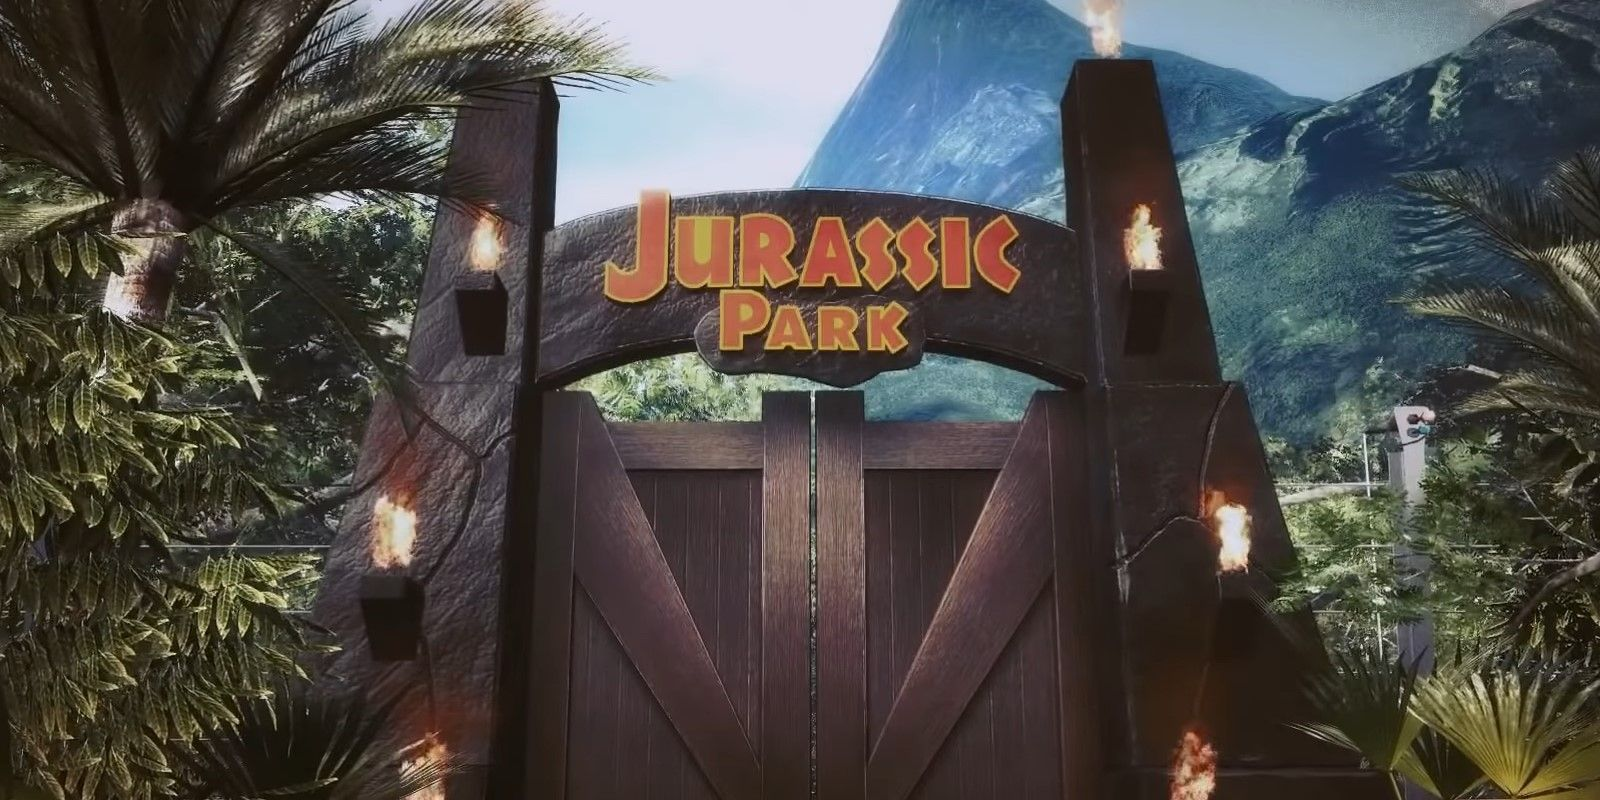 Jurassic park game mod for half-life 2 download who wants to be a millionaire online game 2